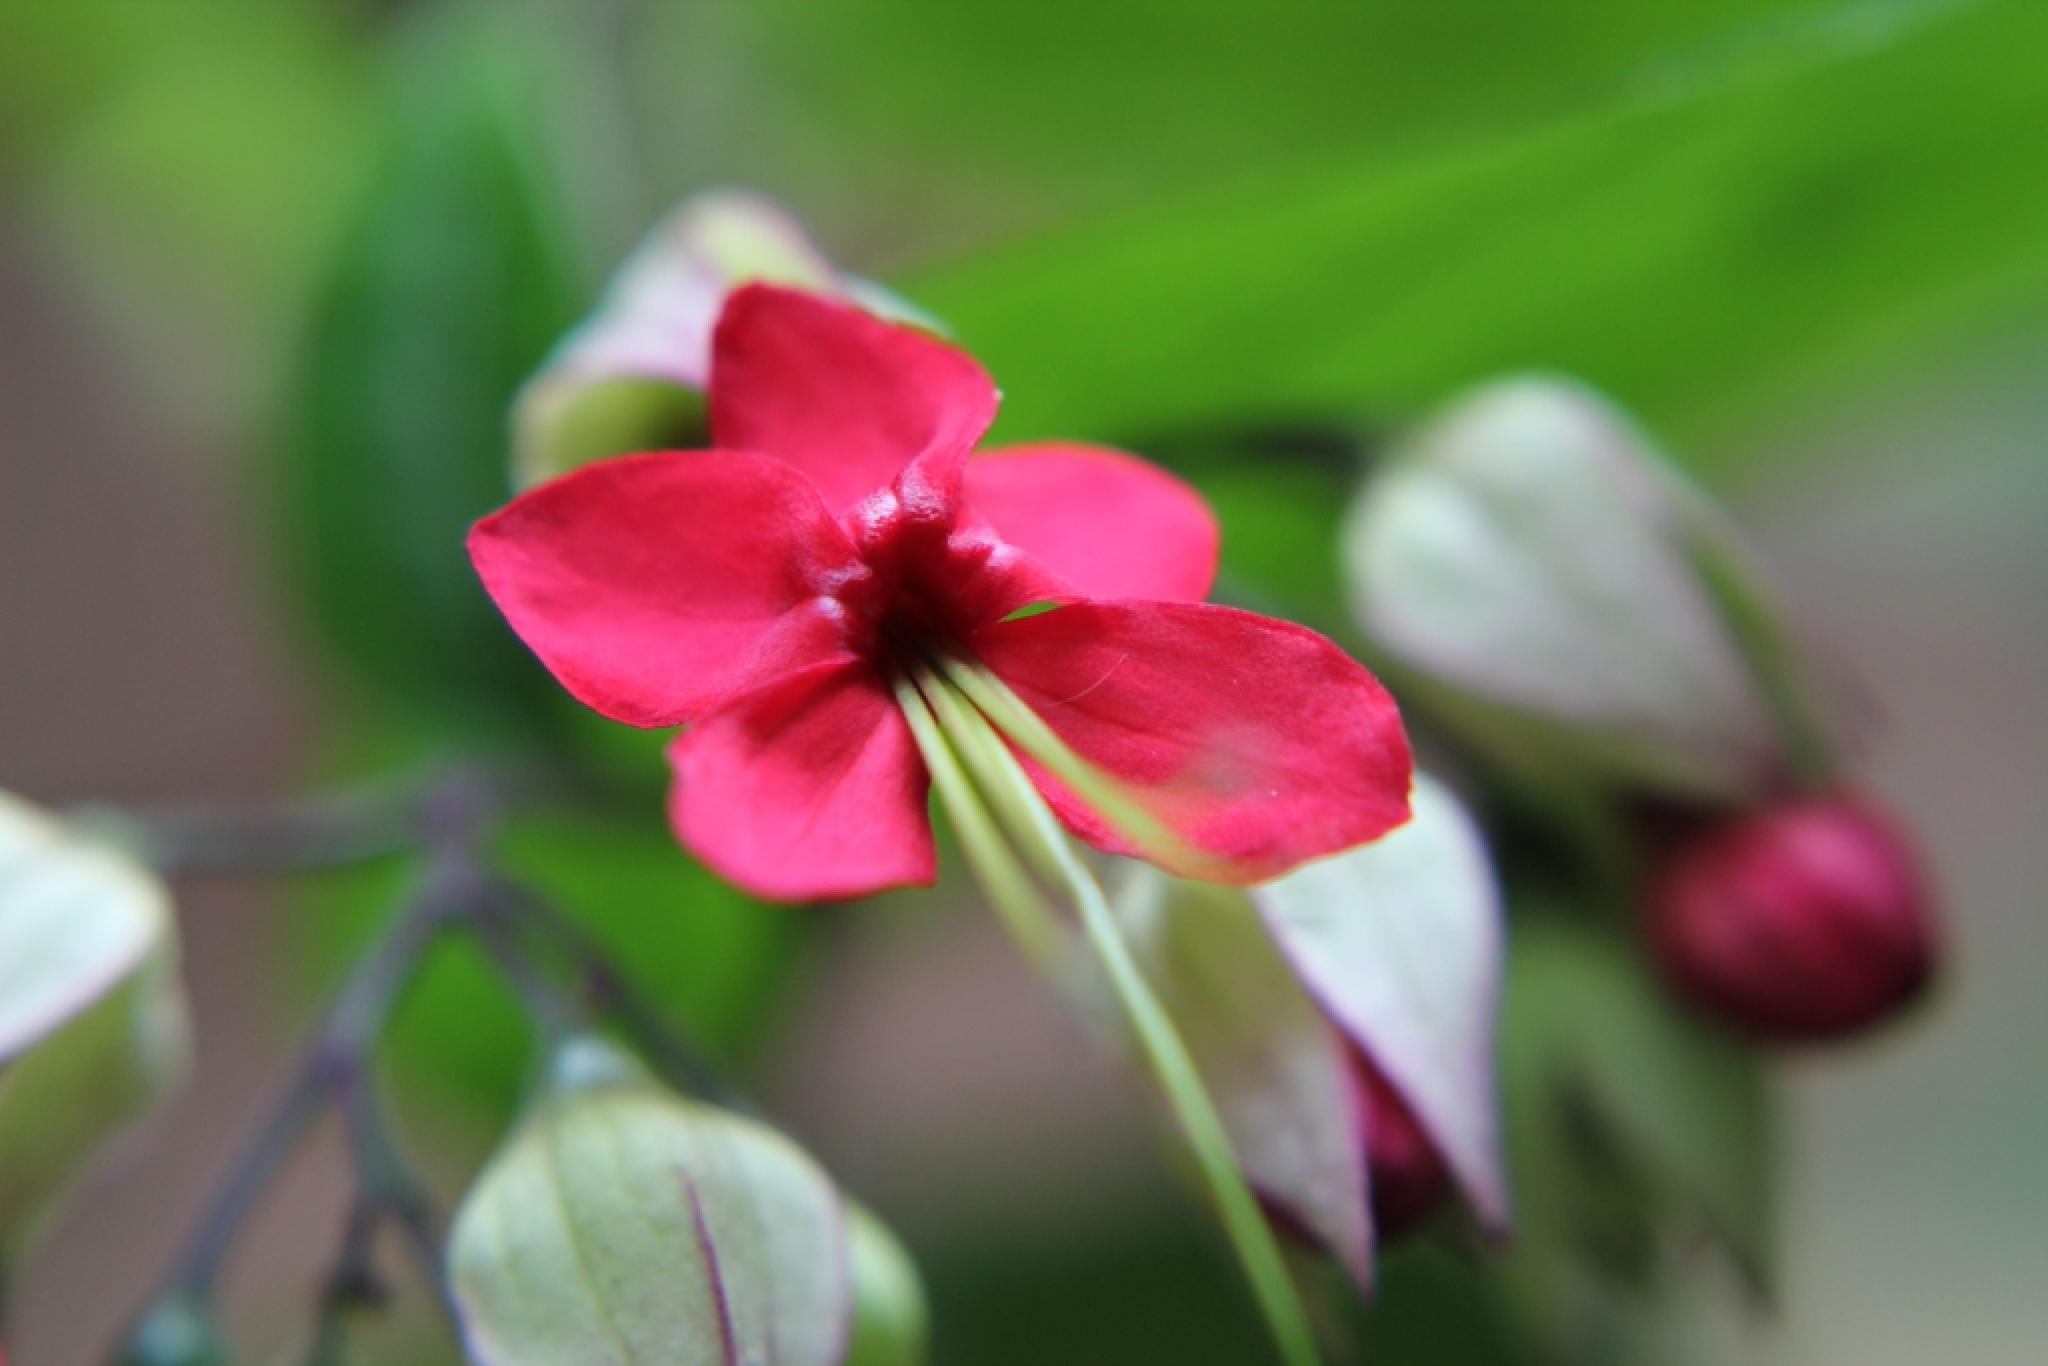 Red Flower by Jayesh Shinde